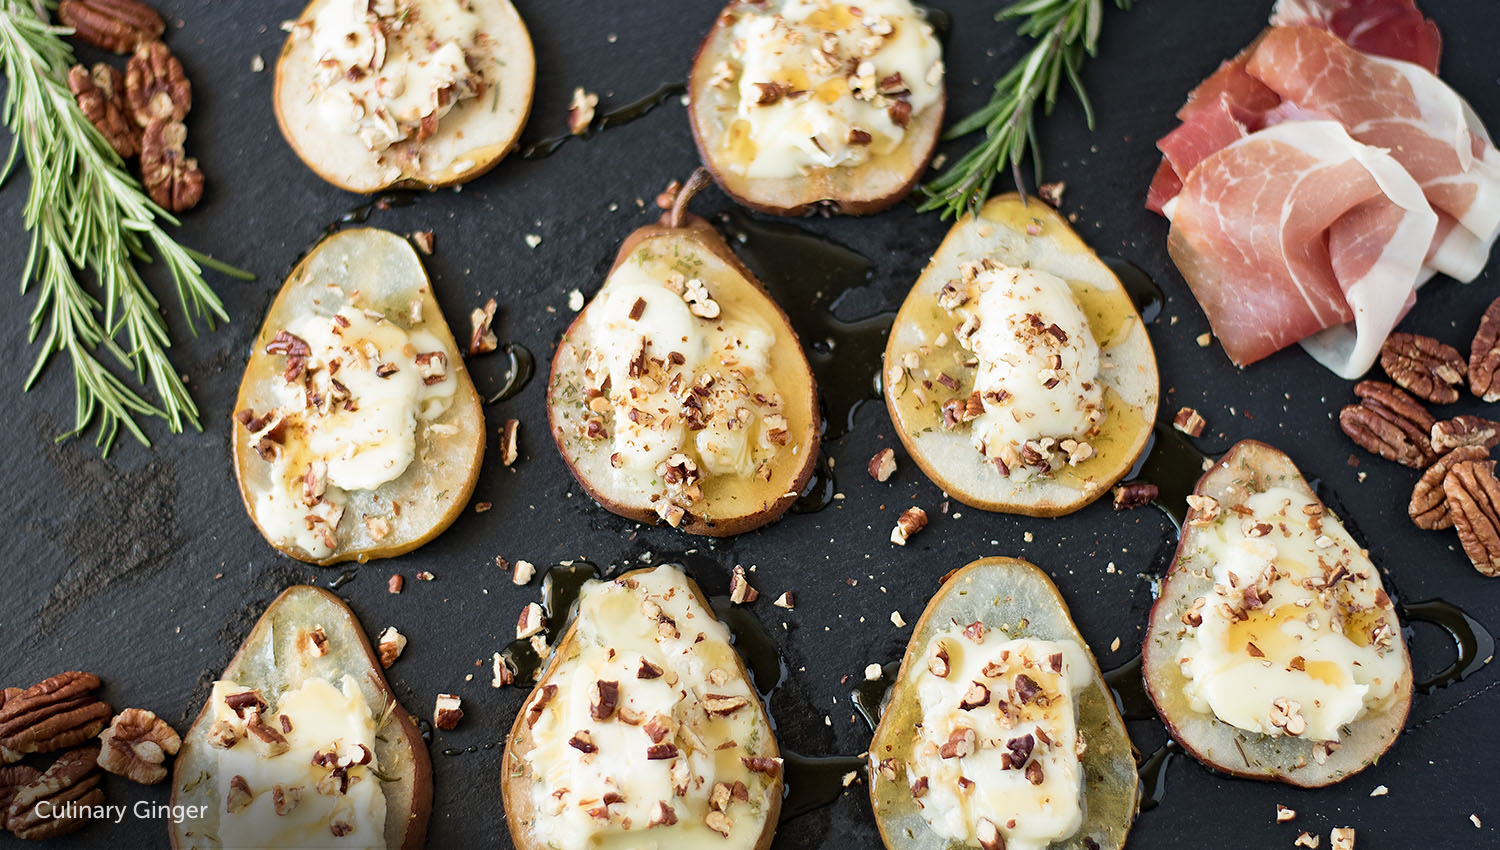 sb-50-thanksgiving-baked-pears-w-chevrot-goat-cheese